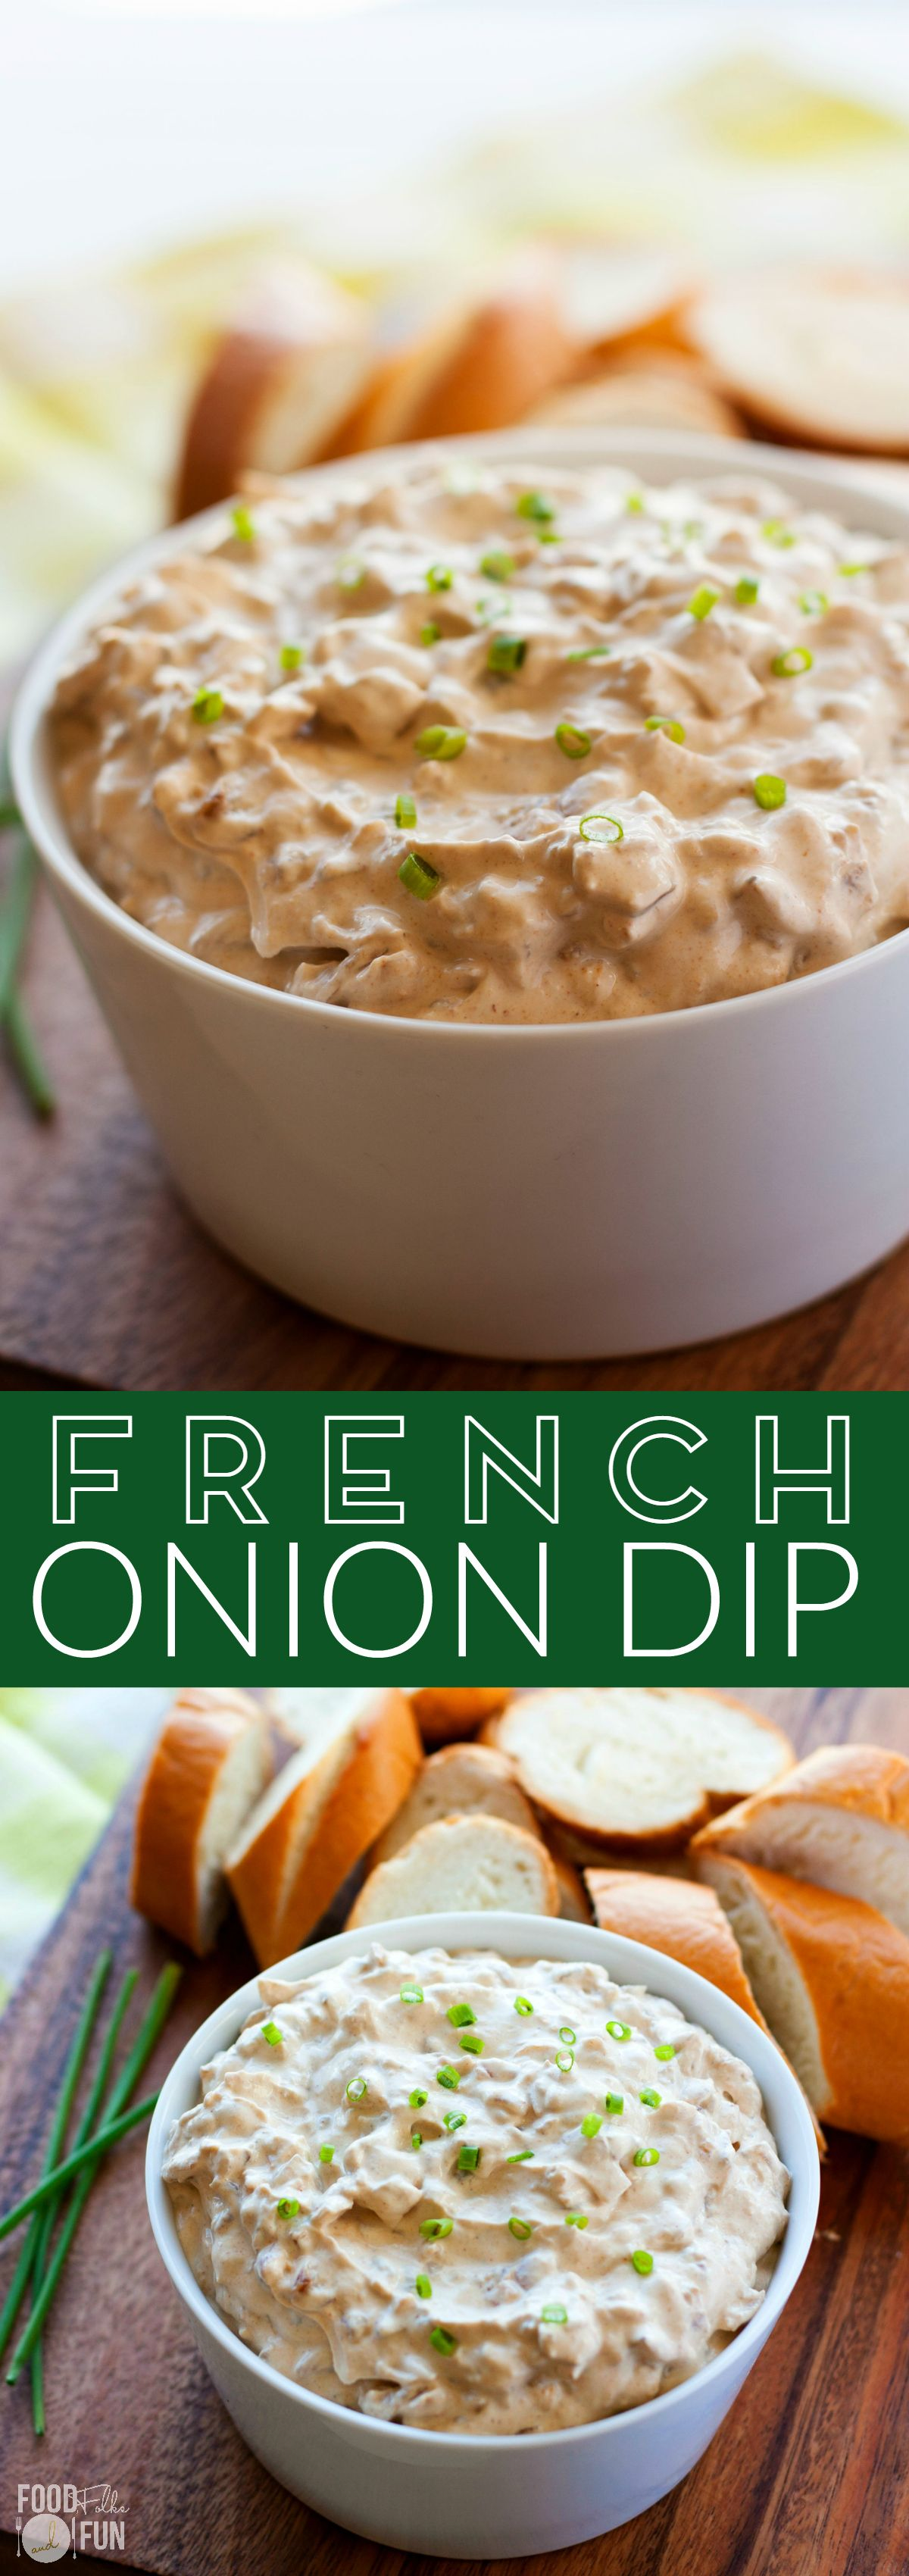 This Homemade French Onion Dip Recipe Will Make You Ditch The Packet For Good It S So Creamy And Tast Homemade French Onion Dip Homemade Dips French Onion Dip